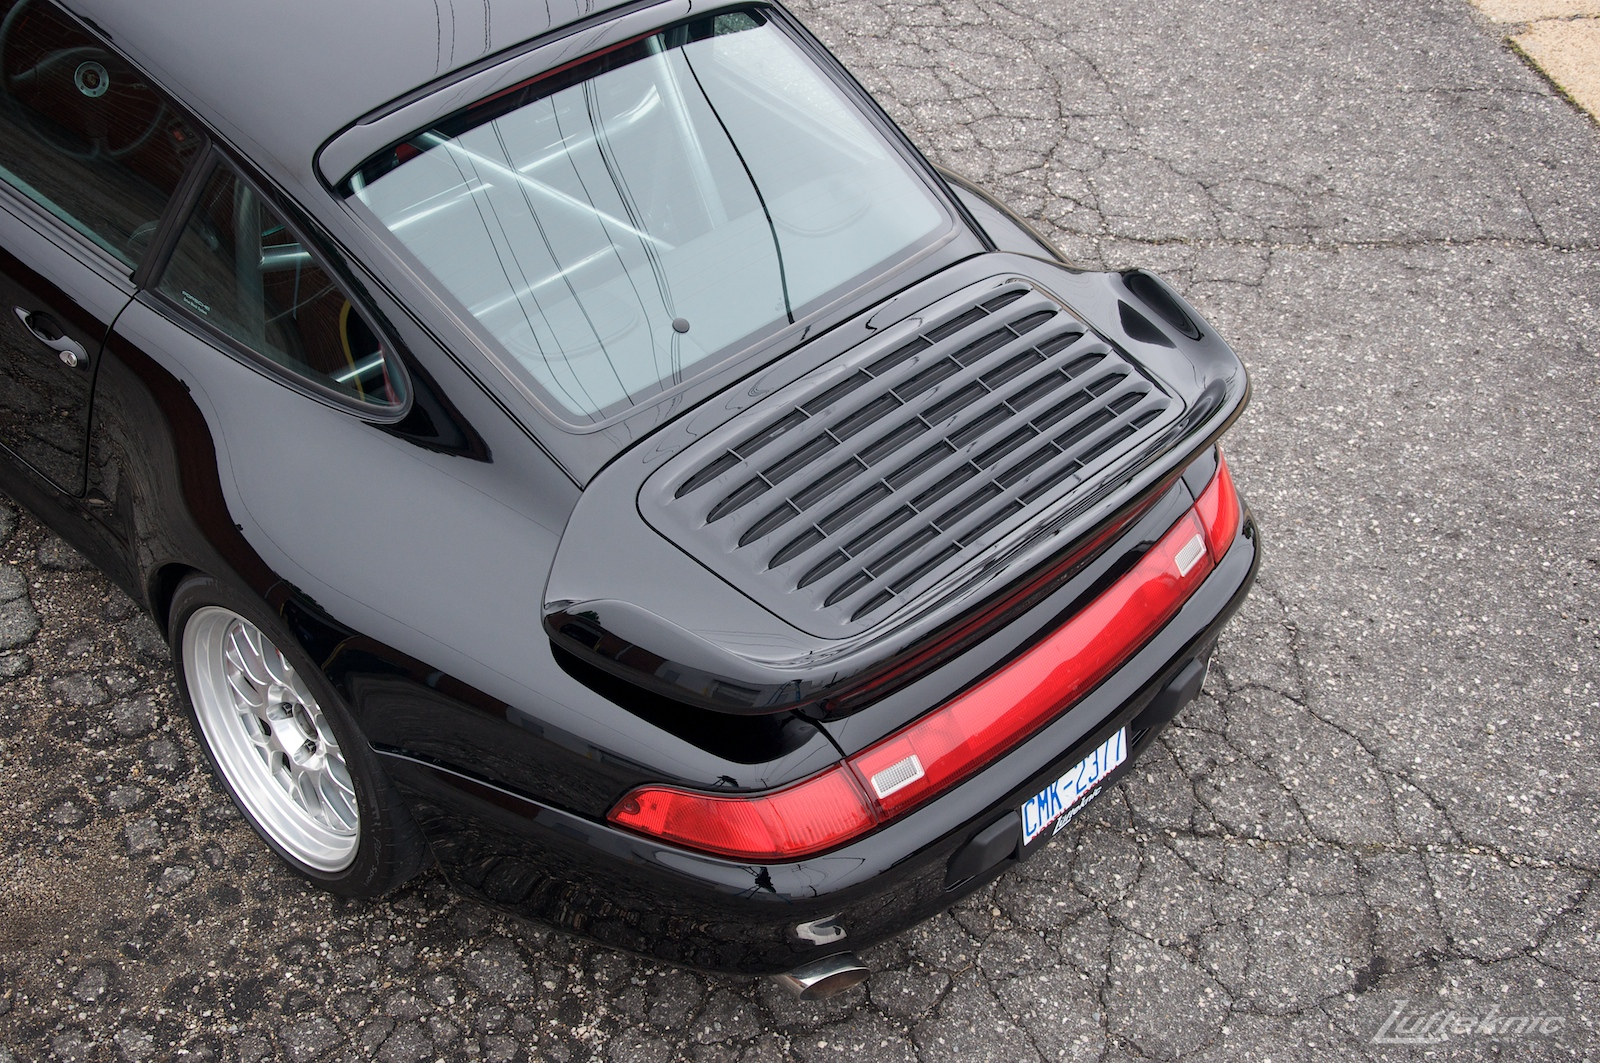 A view from above and behind a shiny black 993 Porsche Turbo in a parking lot showing rear lights and spoiler.